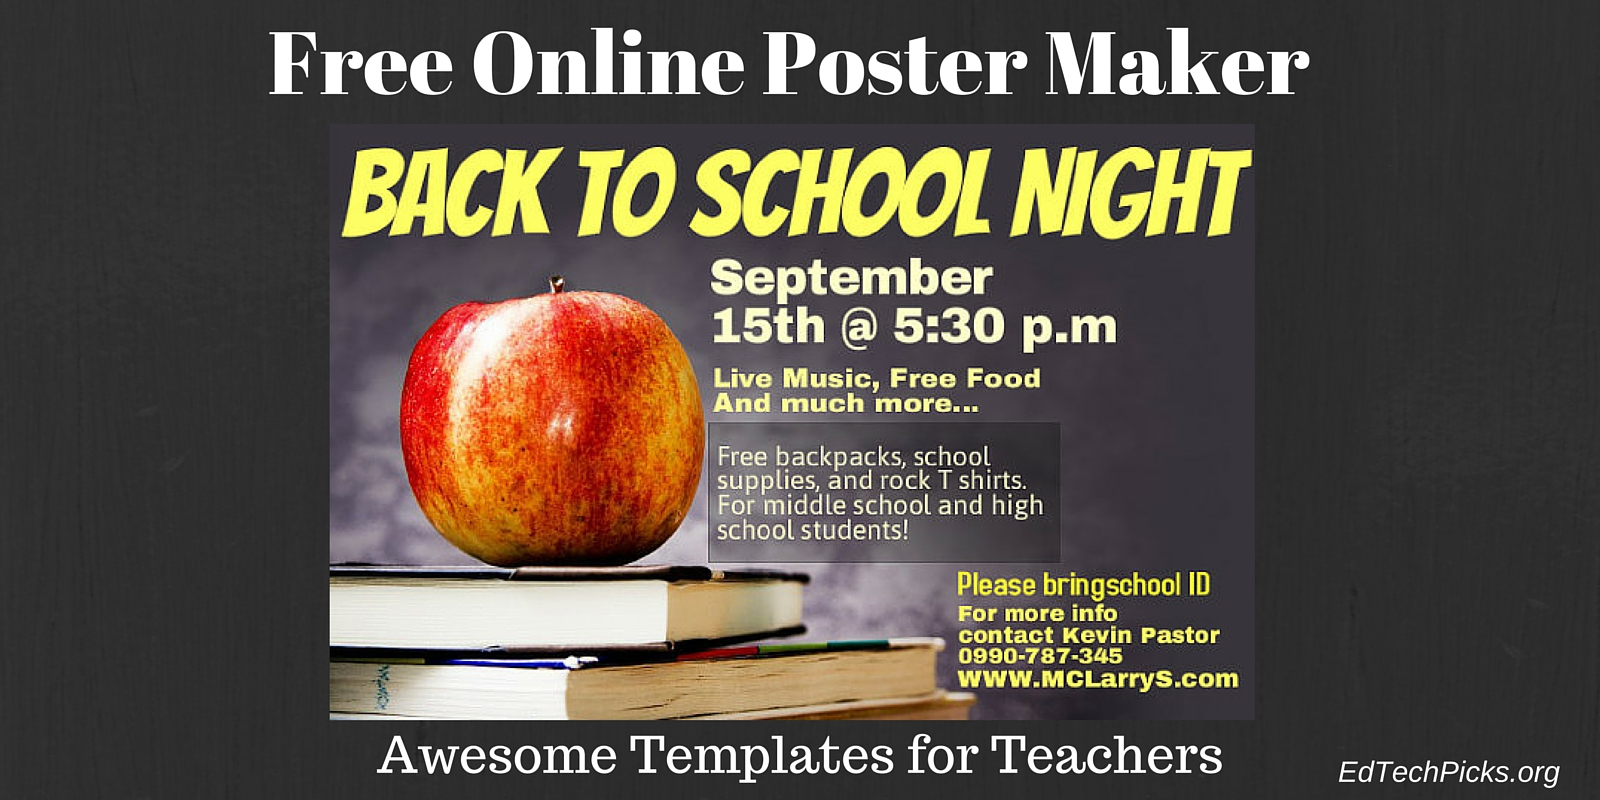 a free online poster